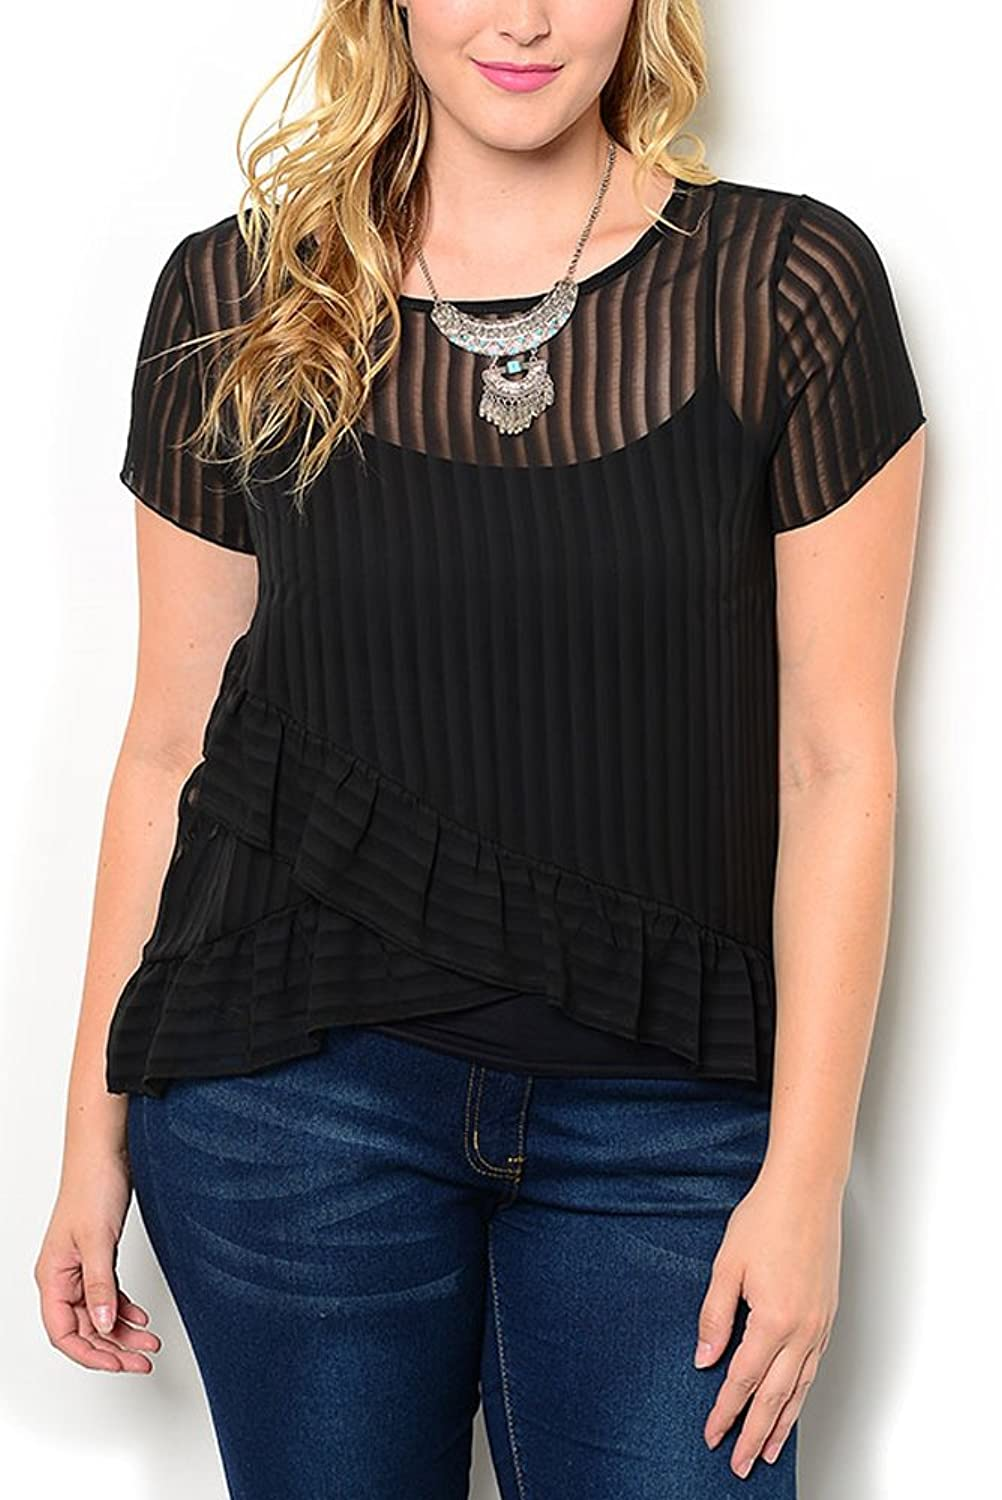 DHStyles Women's Plus Size Sheer Striped Tiered Ruffled Top